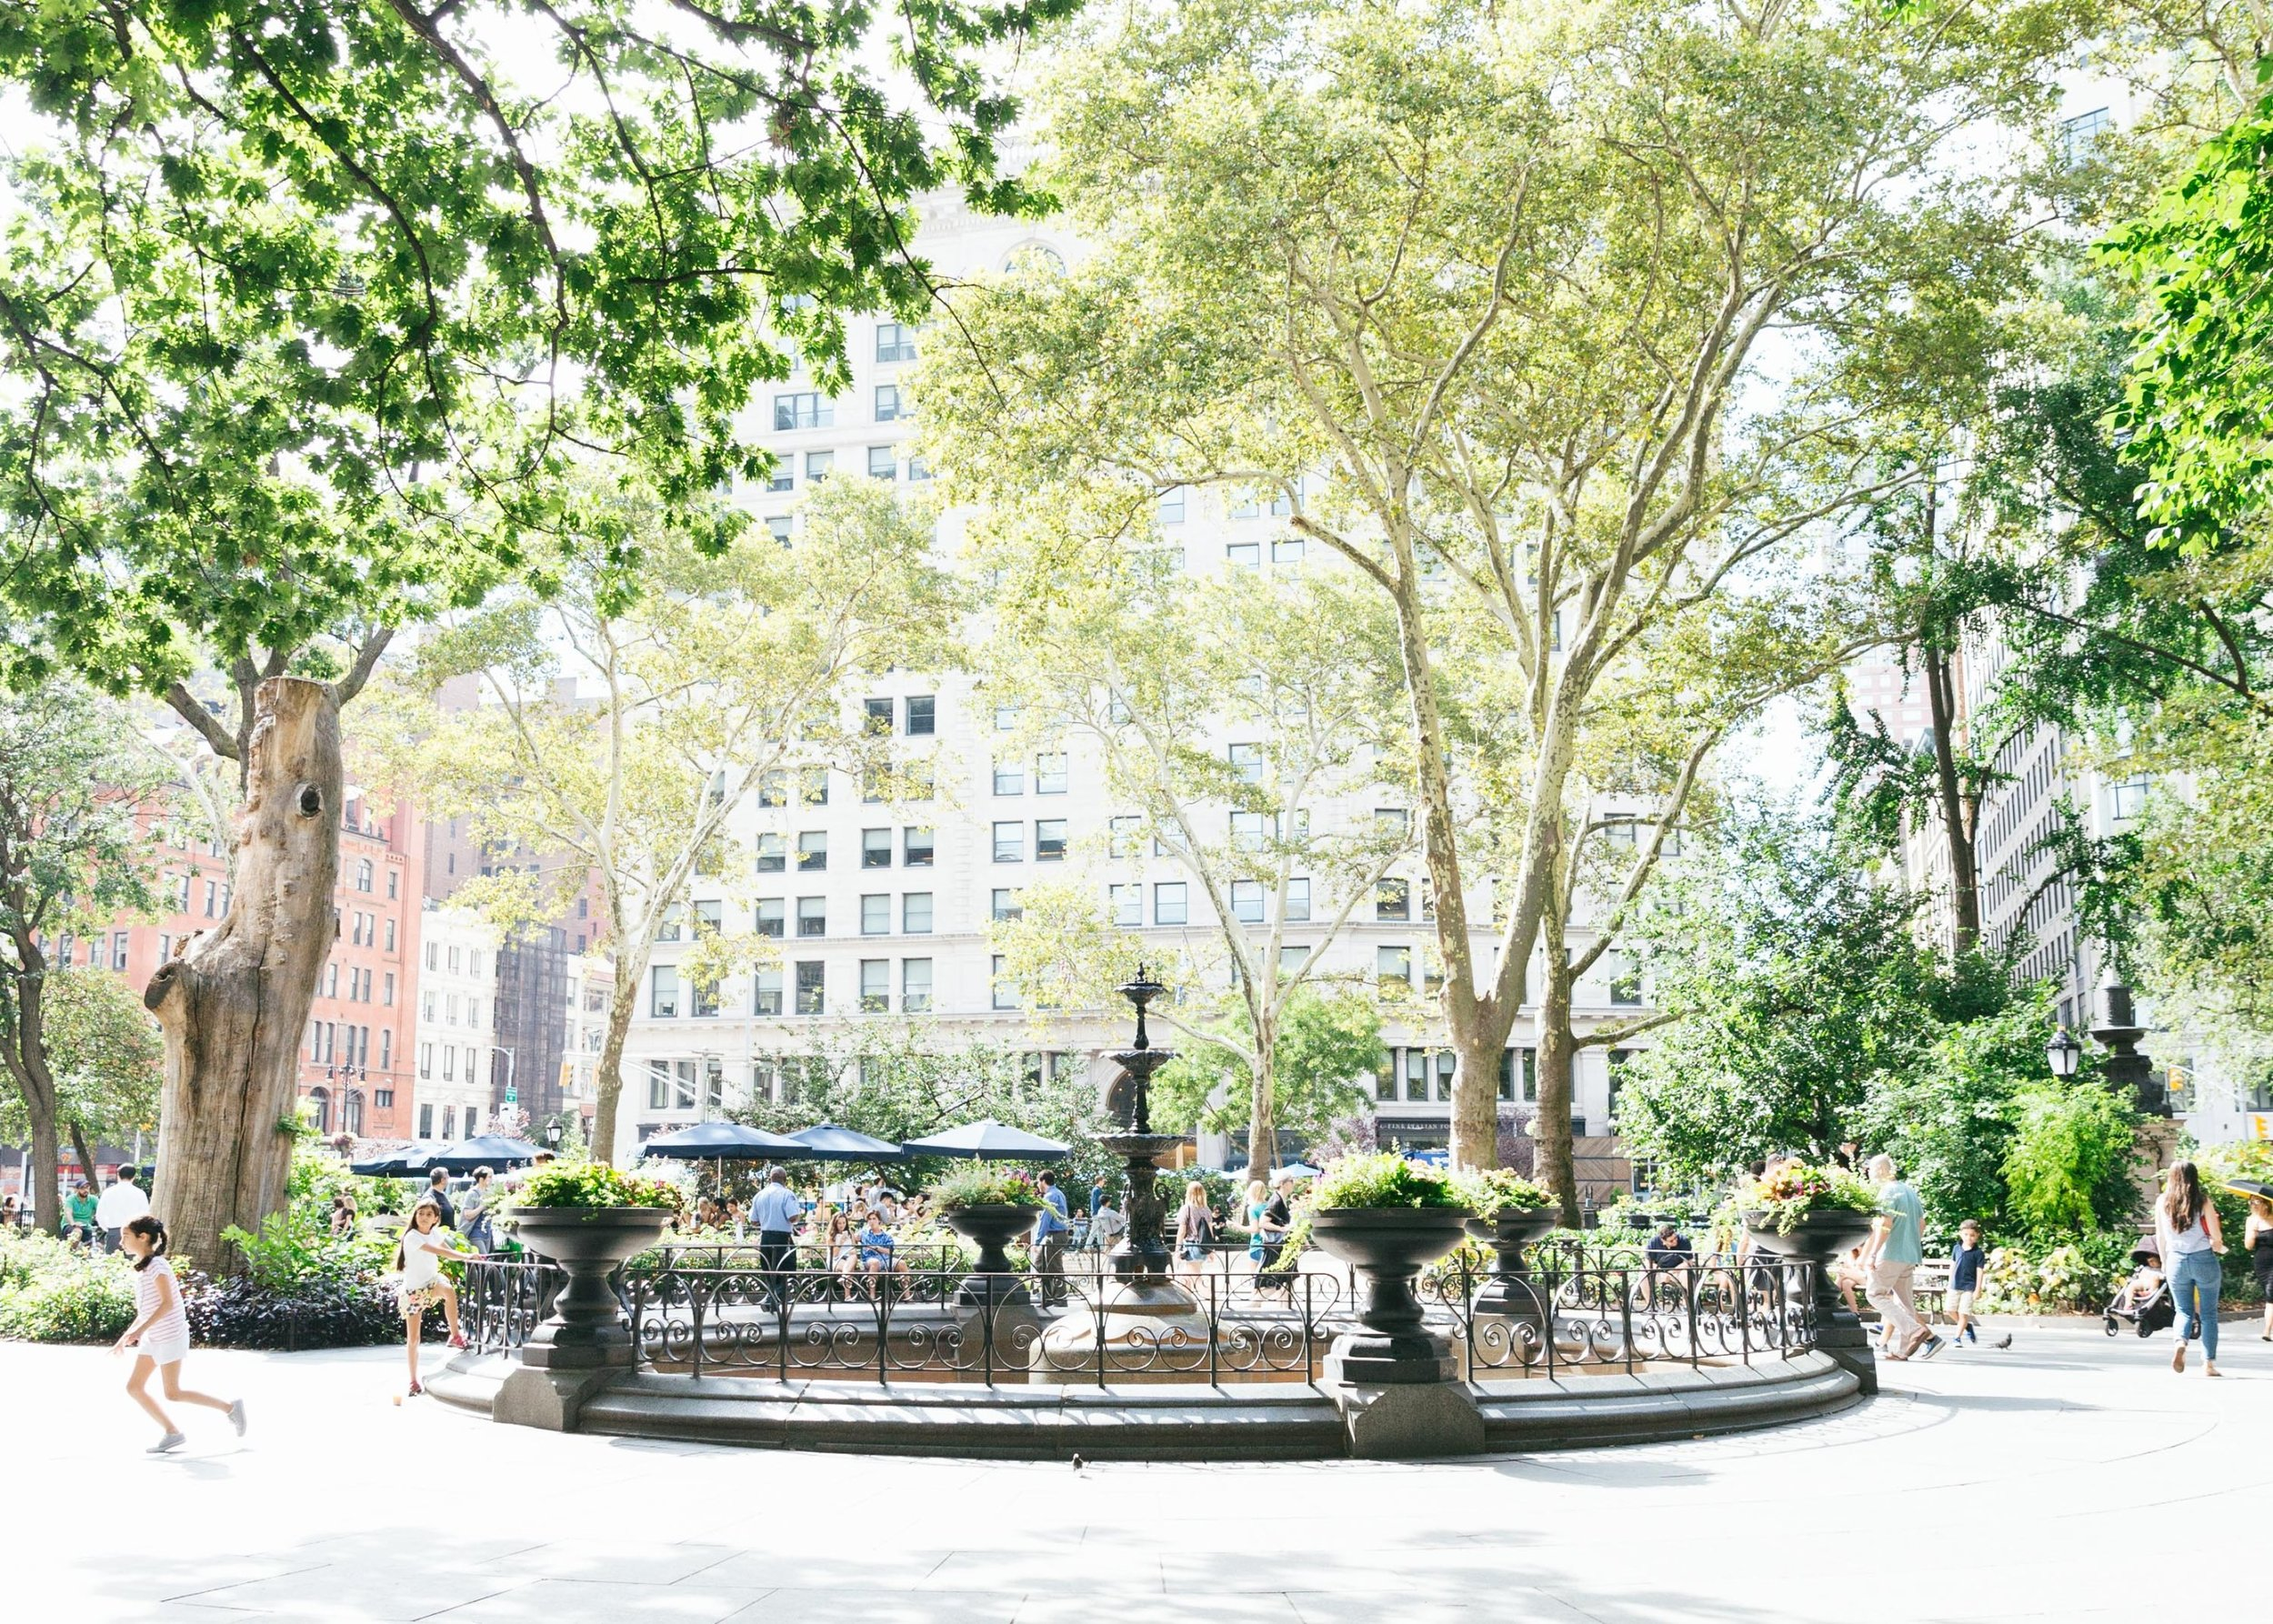 A quiet moment from Washington Square Park, NYC